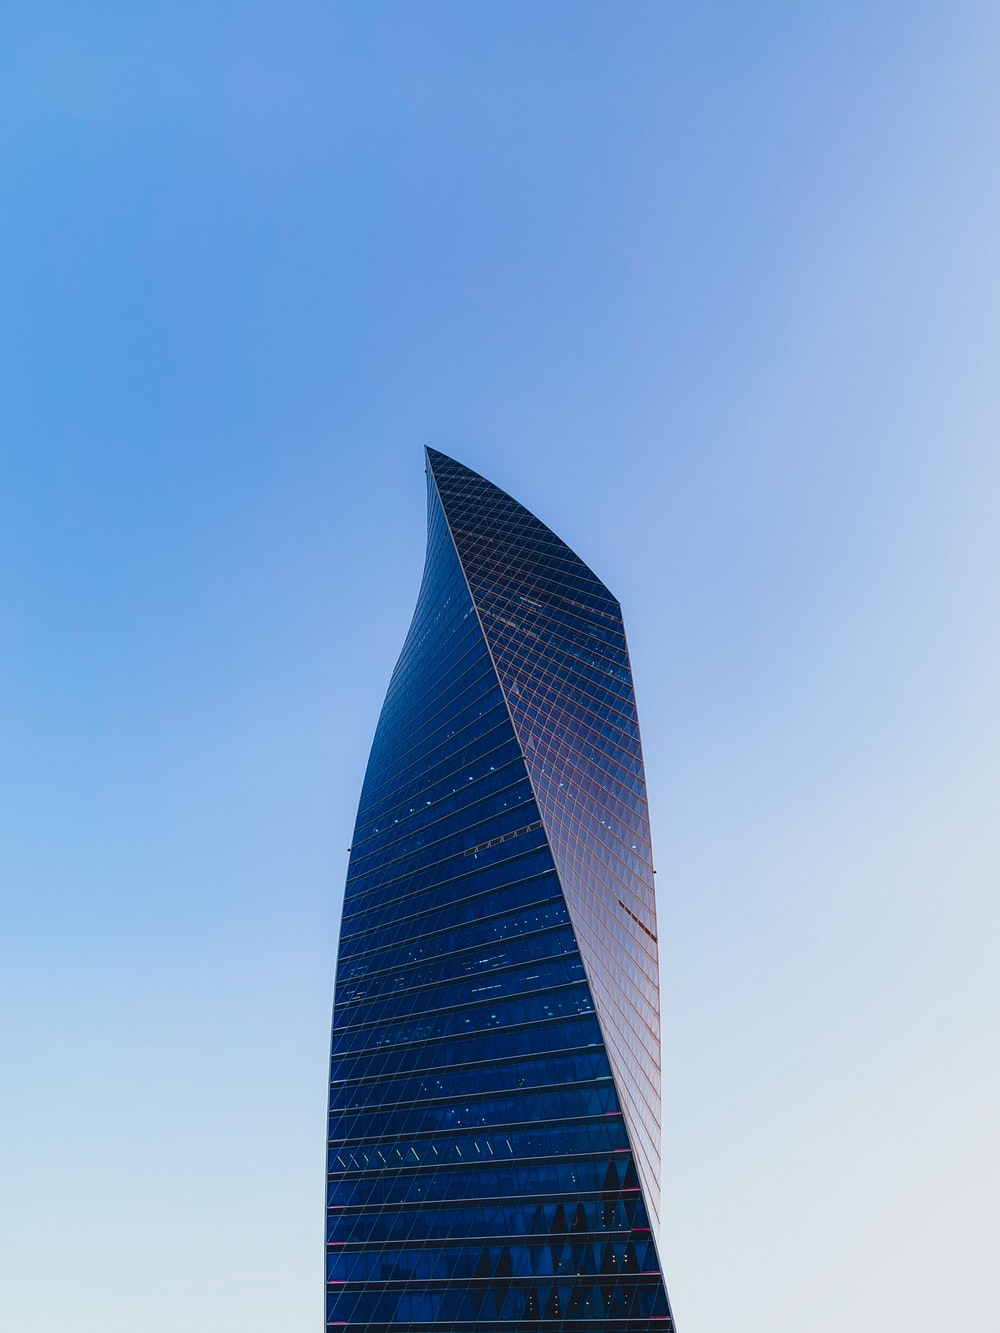 black and gray high rise building under blue sky during daytime